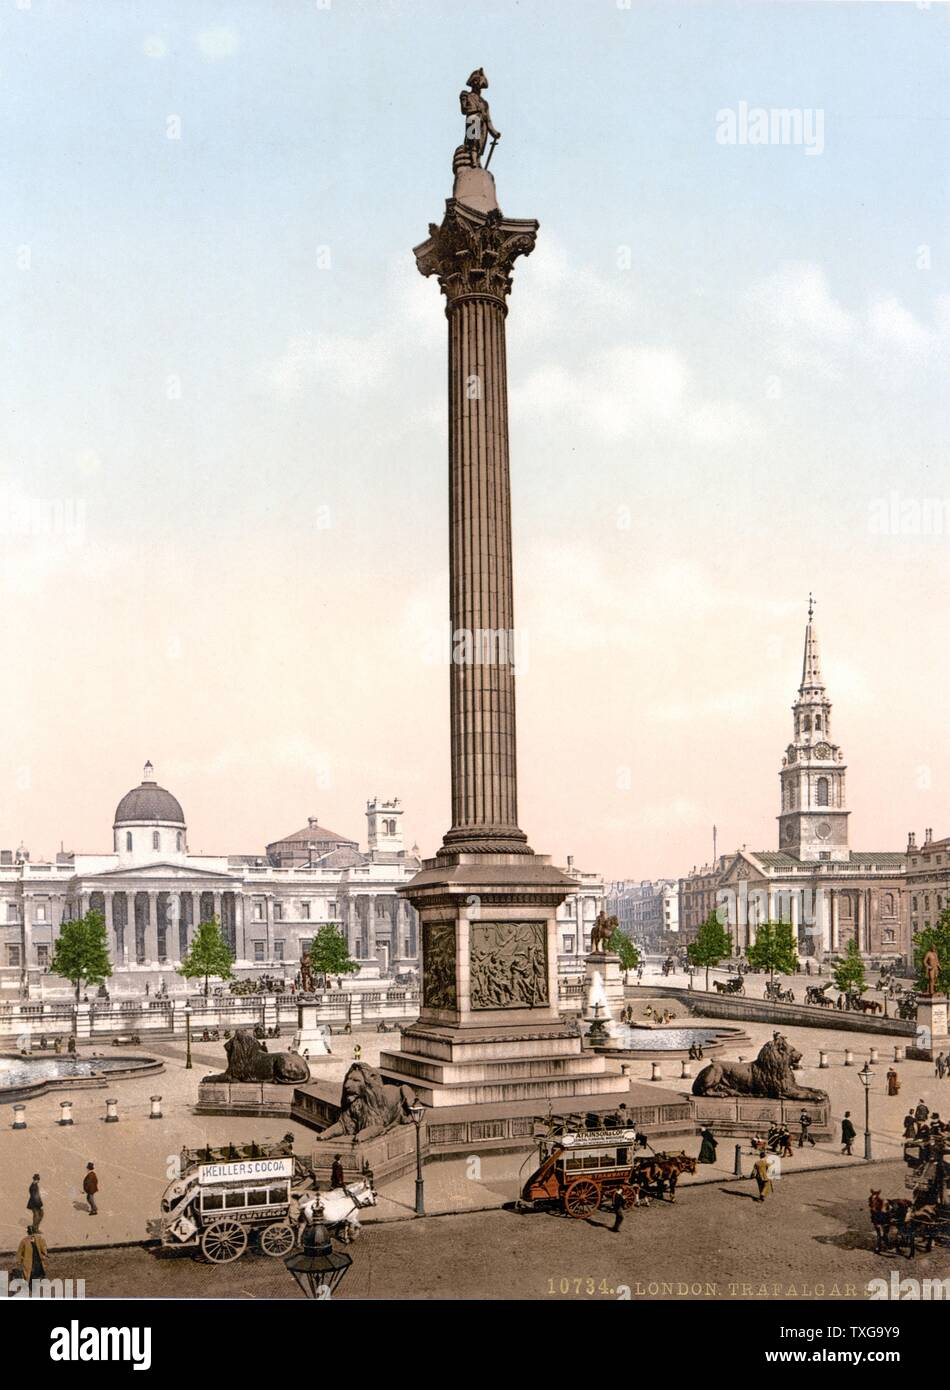 Trafalgar Square, London,  Nelson's Column guarded by Edwin Landseer's lions, the National Gallery in the background and the church of St Martin's-in-the-Fields, right 1890-1900. - Stock Image